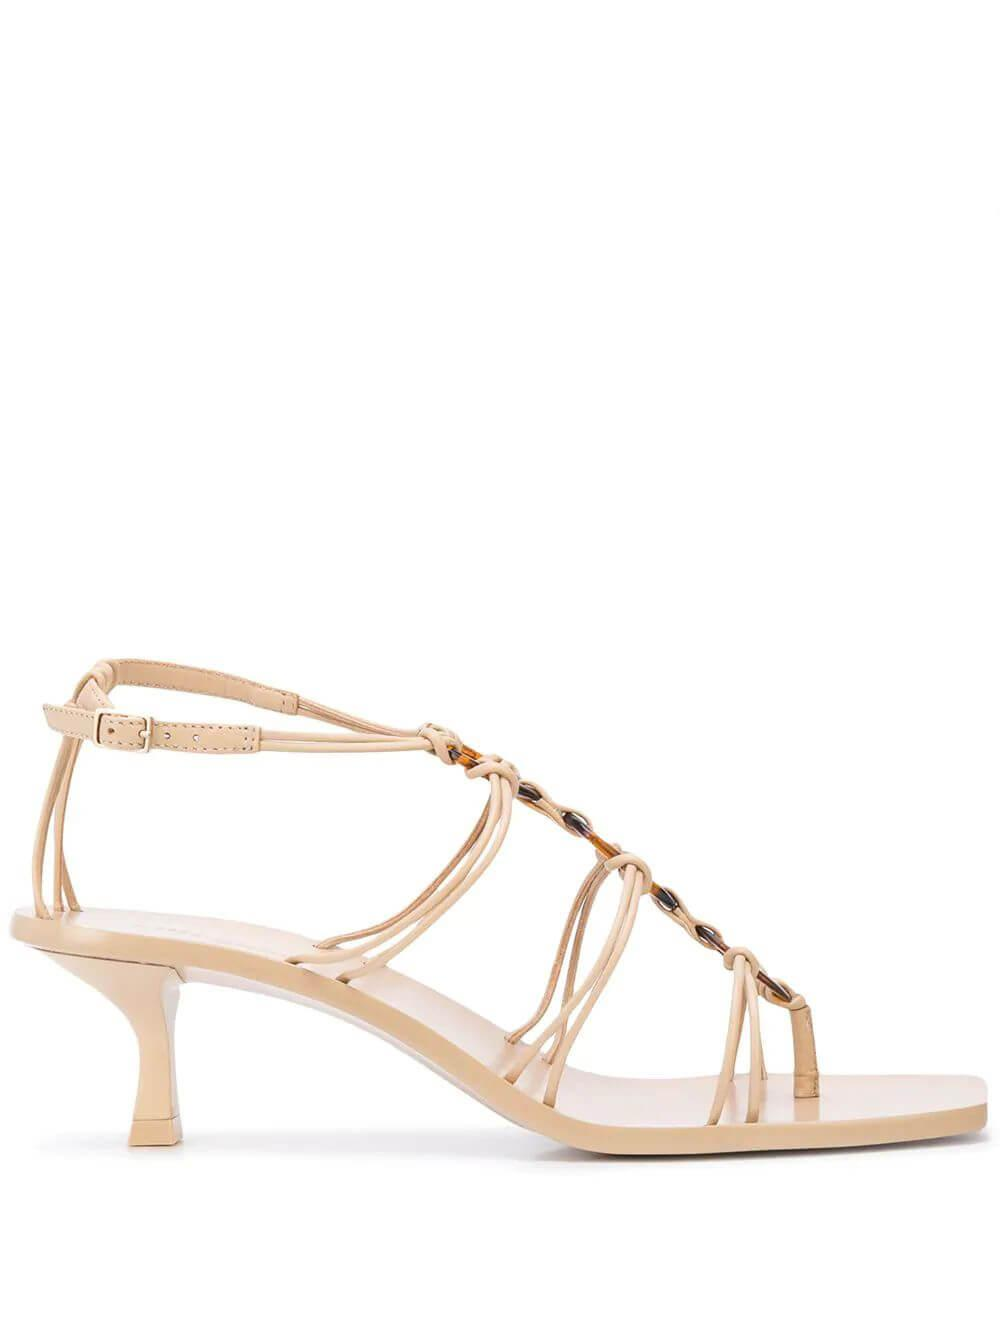 Ziba Strappy Knotted Sandal With Kitten Heel Item # F2-02LT